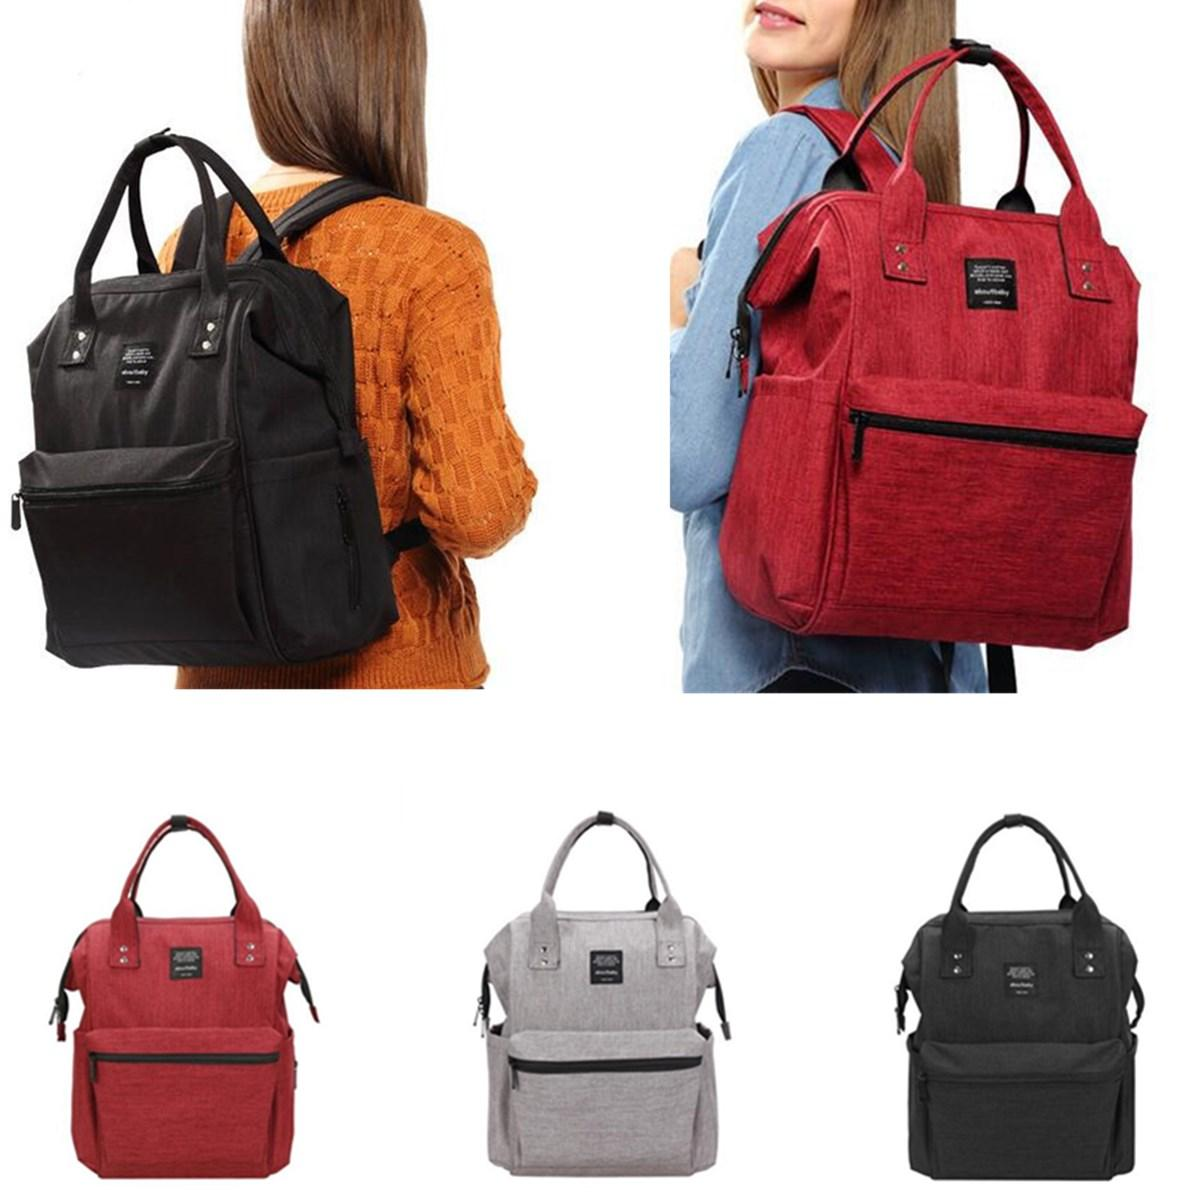 Baby Bags Online Travel Anti Theft Baby Diaper Nappy Mummy Bag Tote Maternity Women S Handbag Backpack